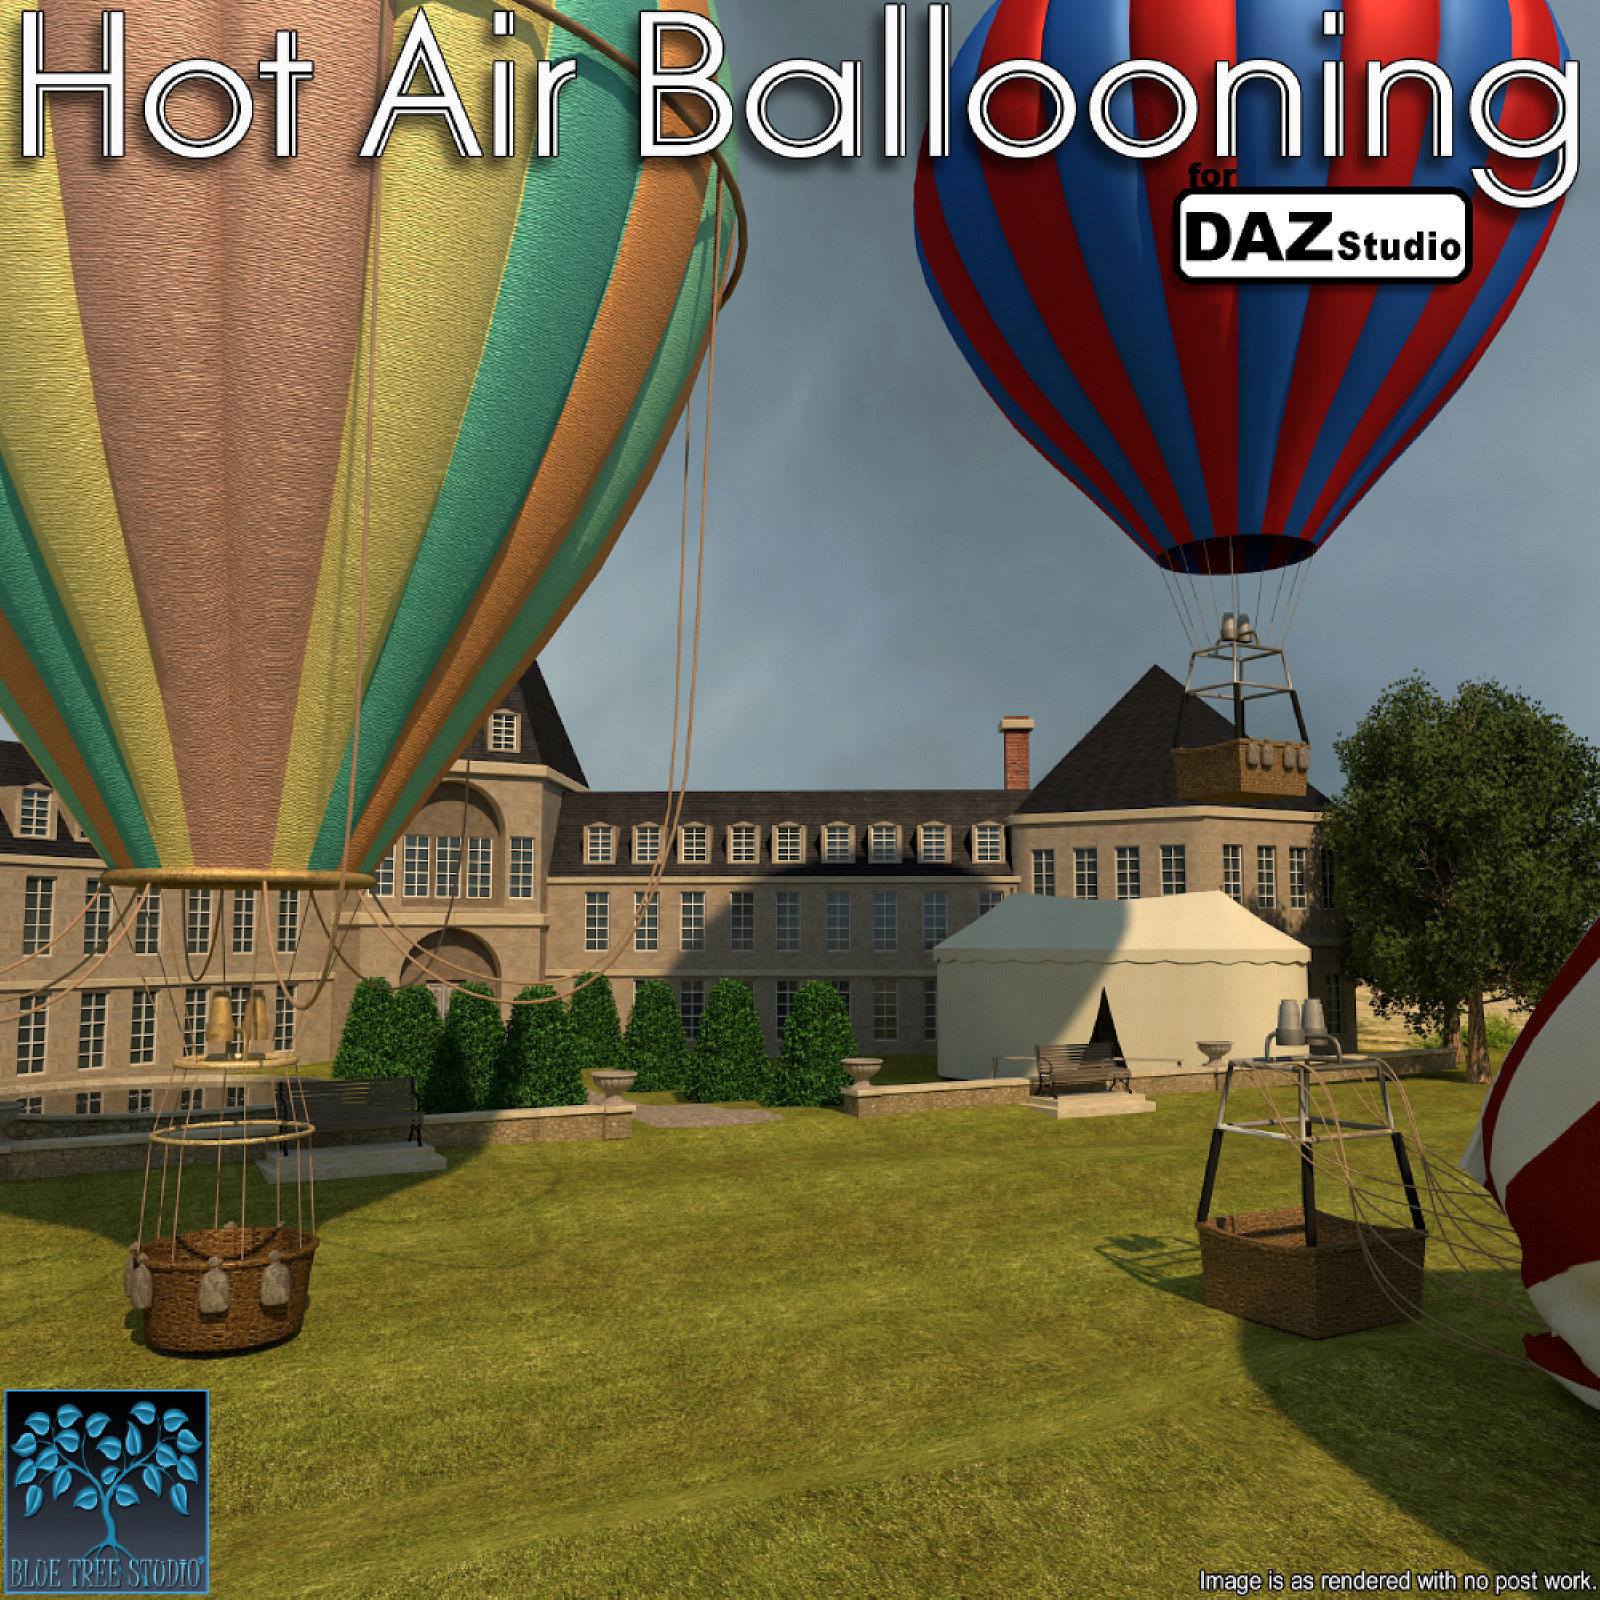 Hot Air Ballooning for Daz Studio